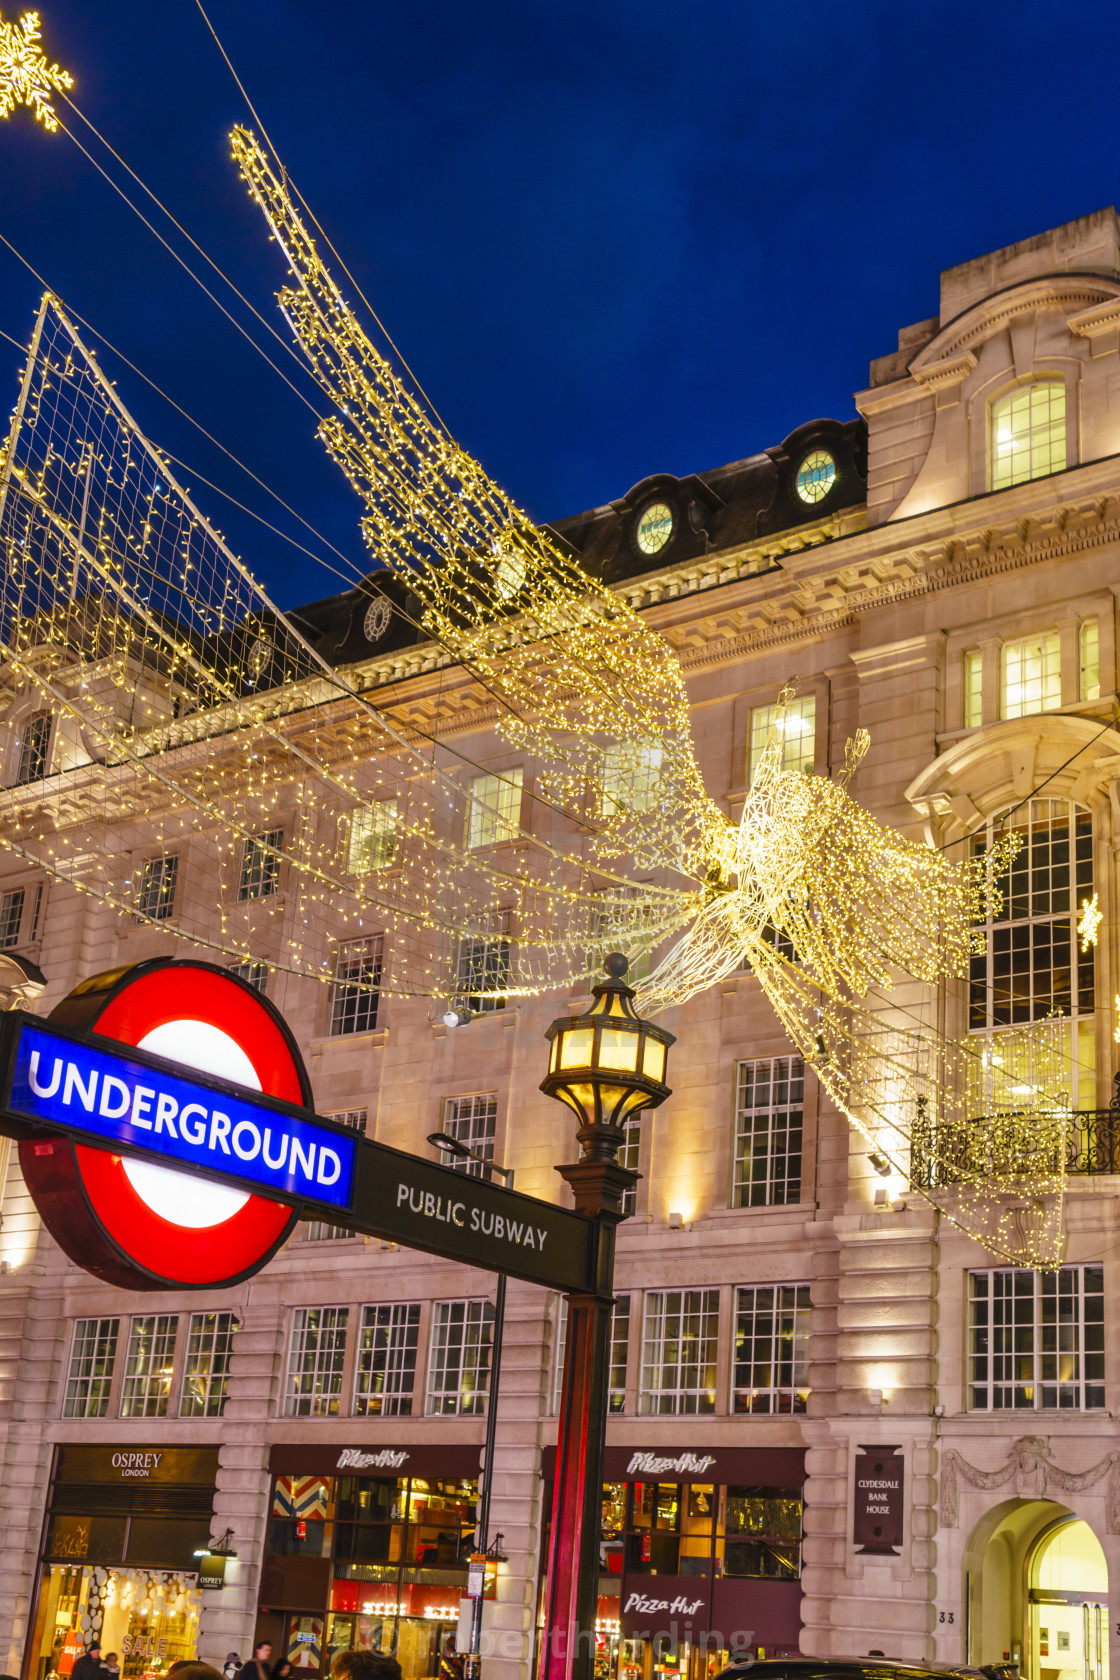 England Christmas Decorations.Christmas Decorations At Piccadilly Circus London England